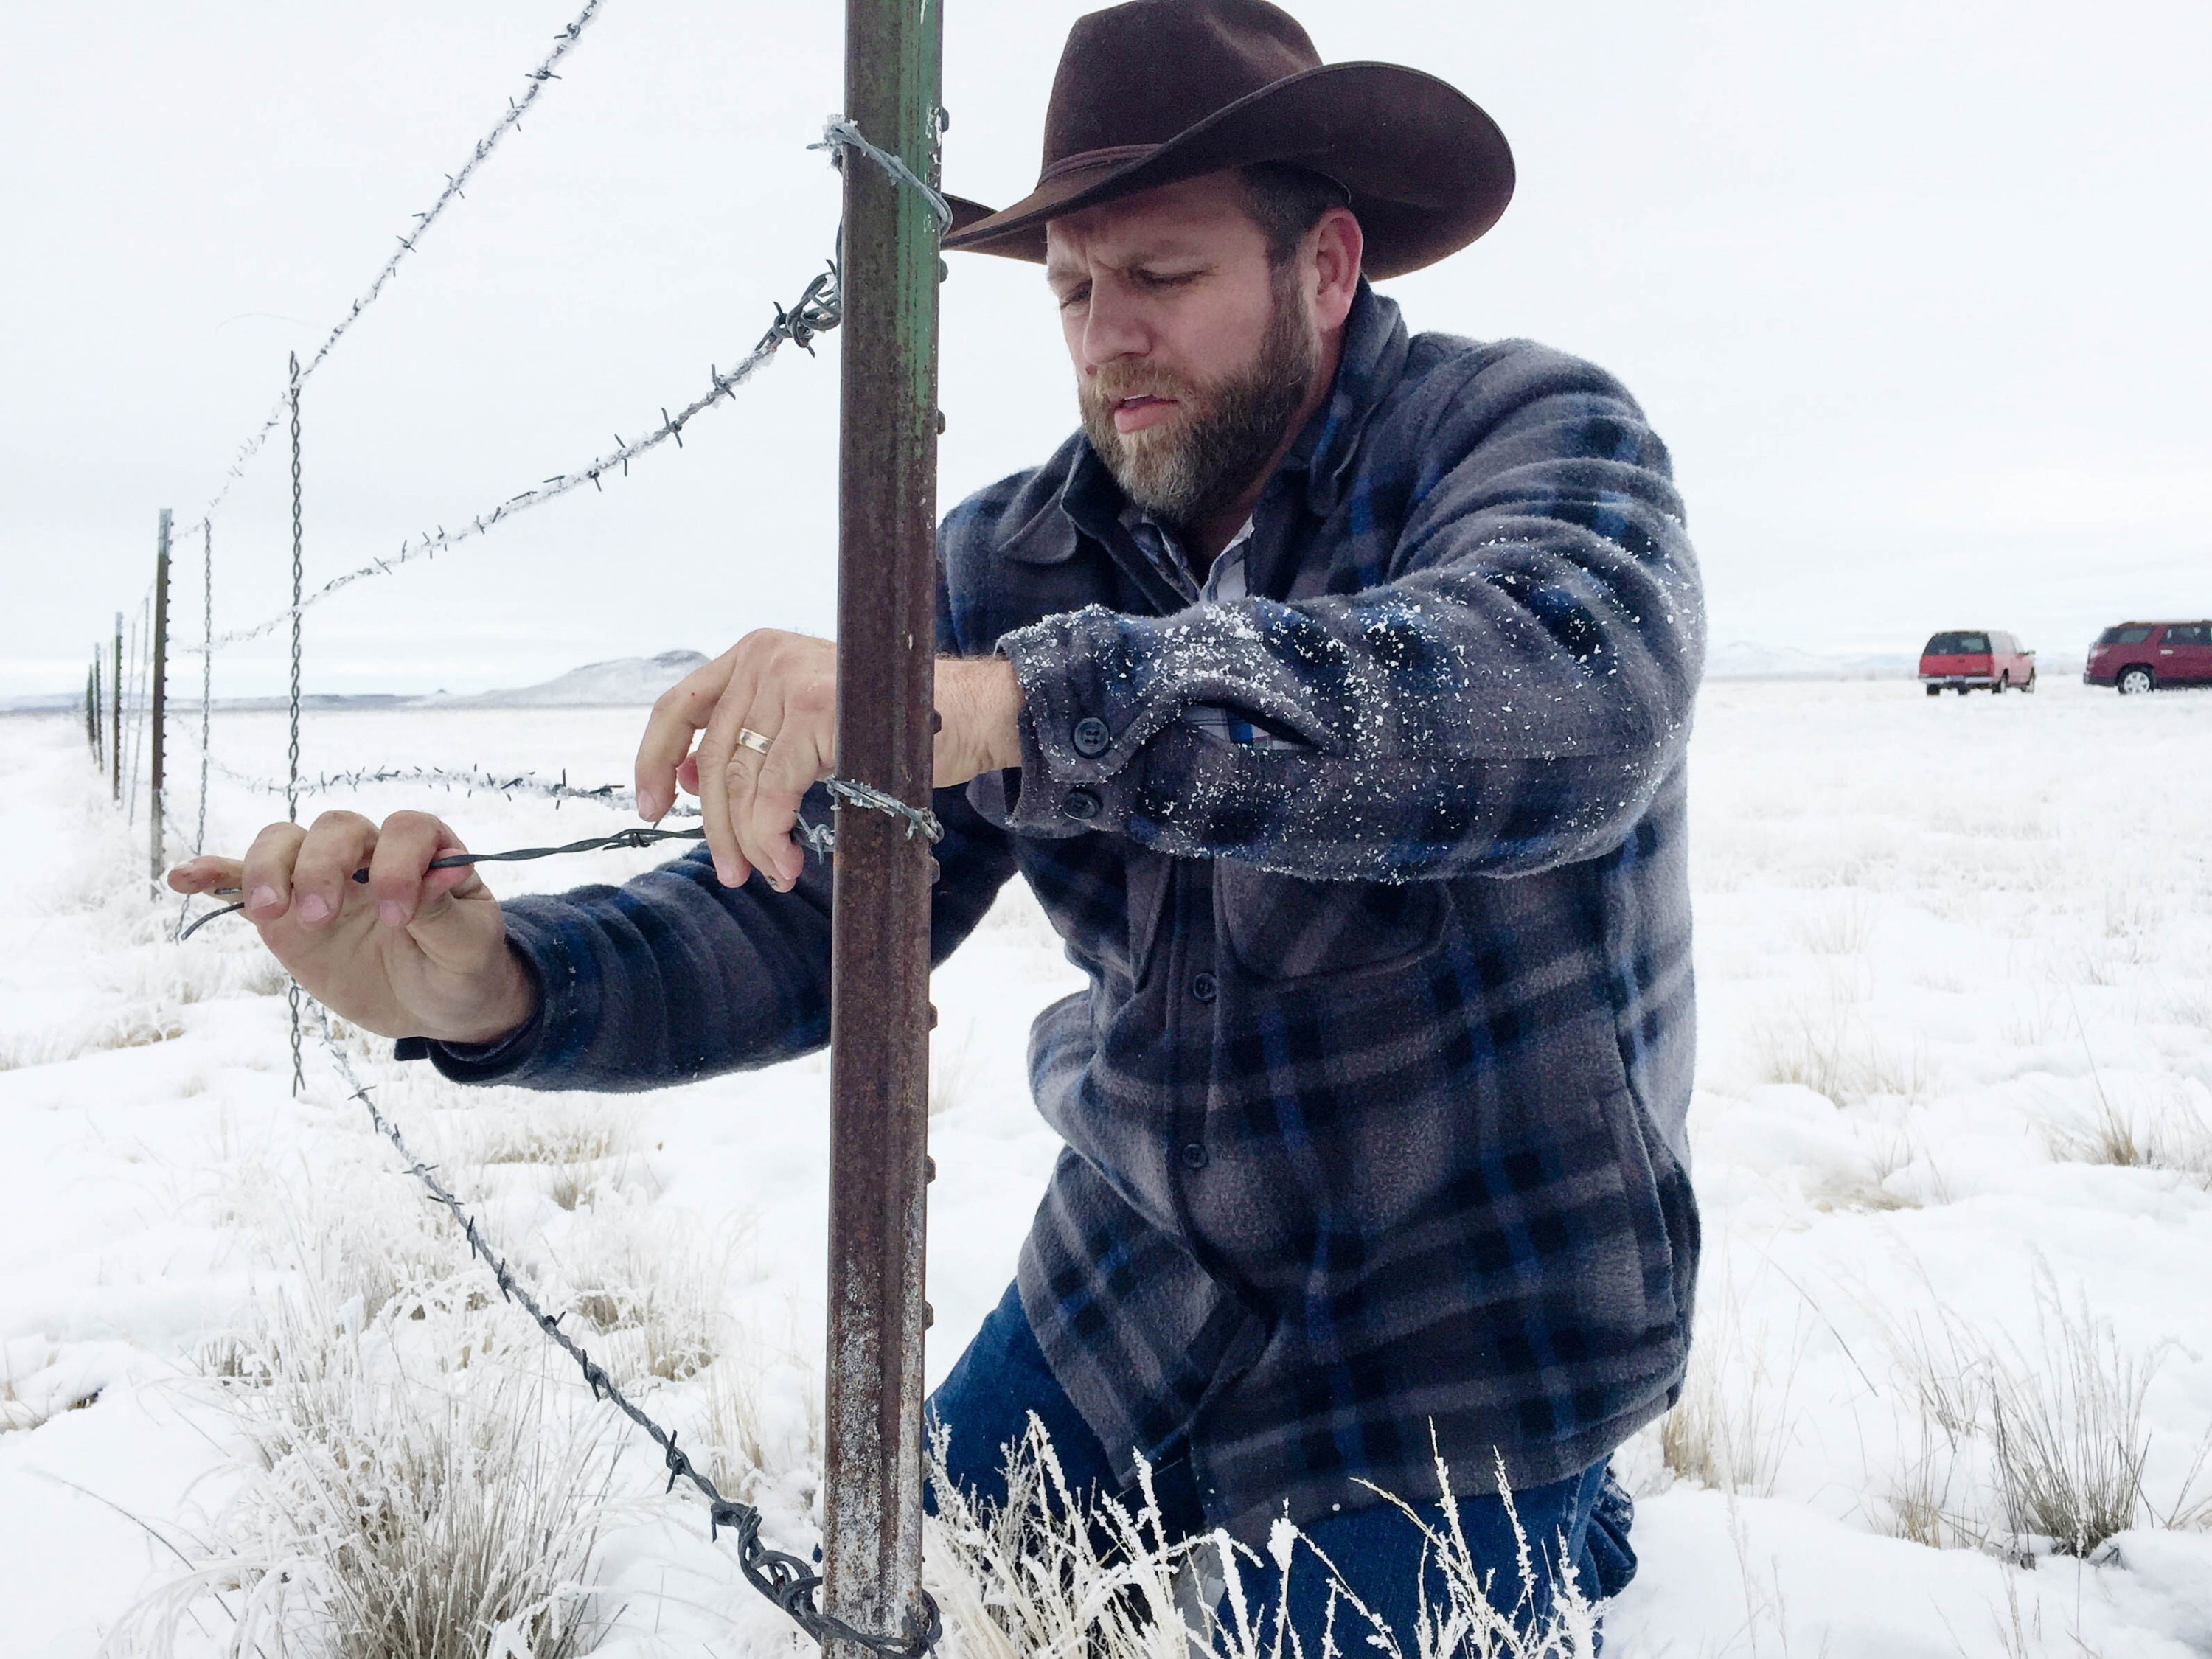 Caption: Ammon Bundy removes a fence from the Malheur National Wildlife Refuge in January., Credit: Jess Burns/OPB